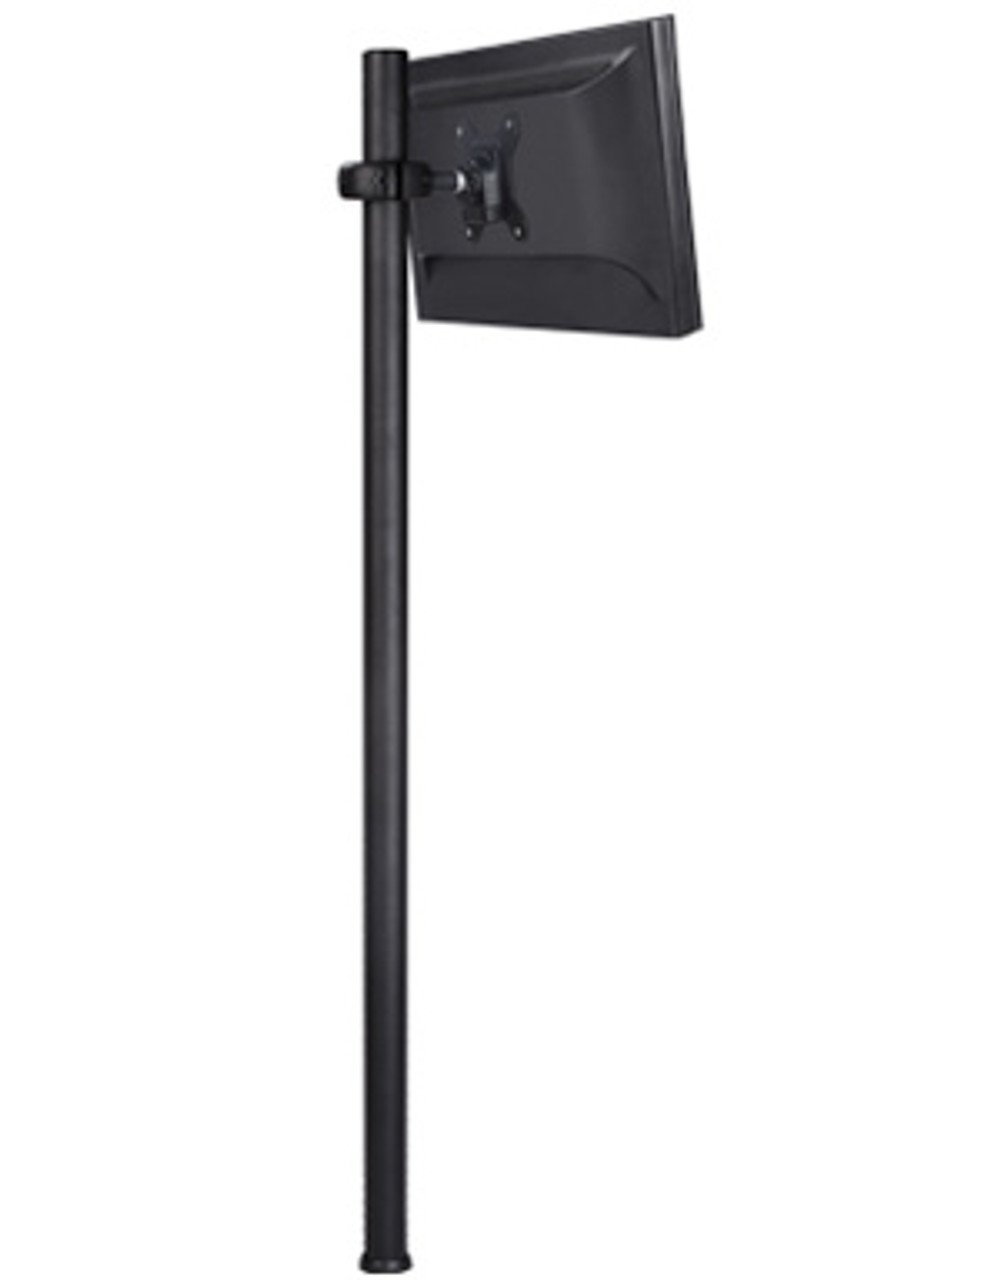 Product image for Atdec Spacedec Display Donut Pole 1150mm Black | CX Computer Superstore